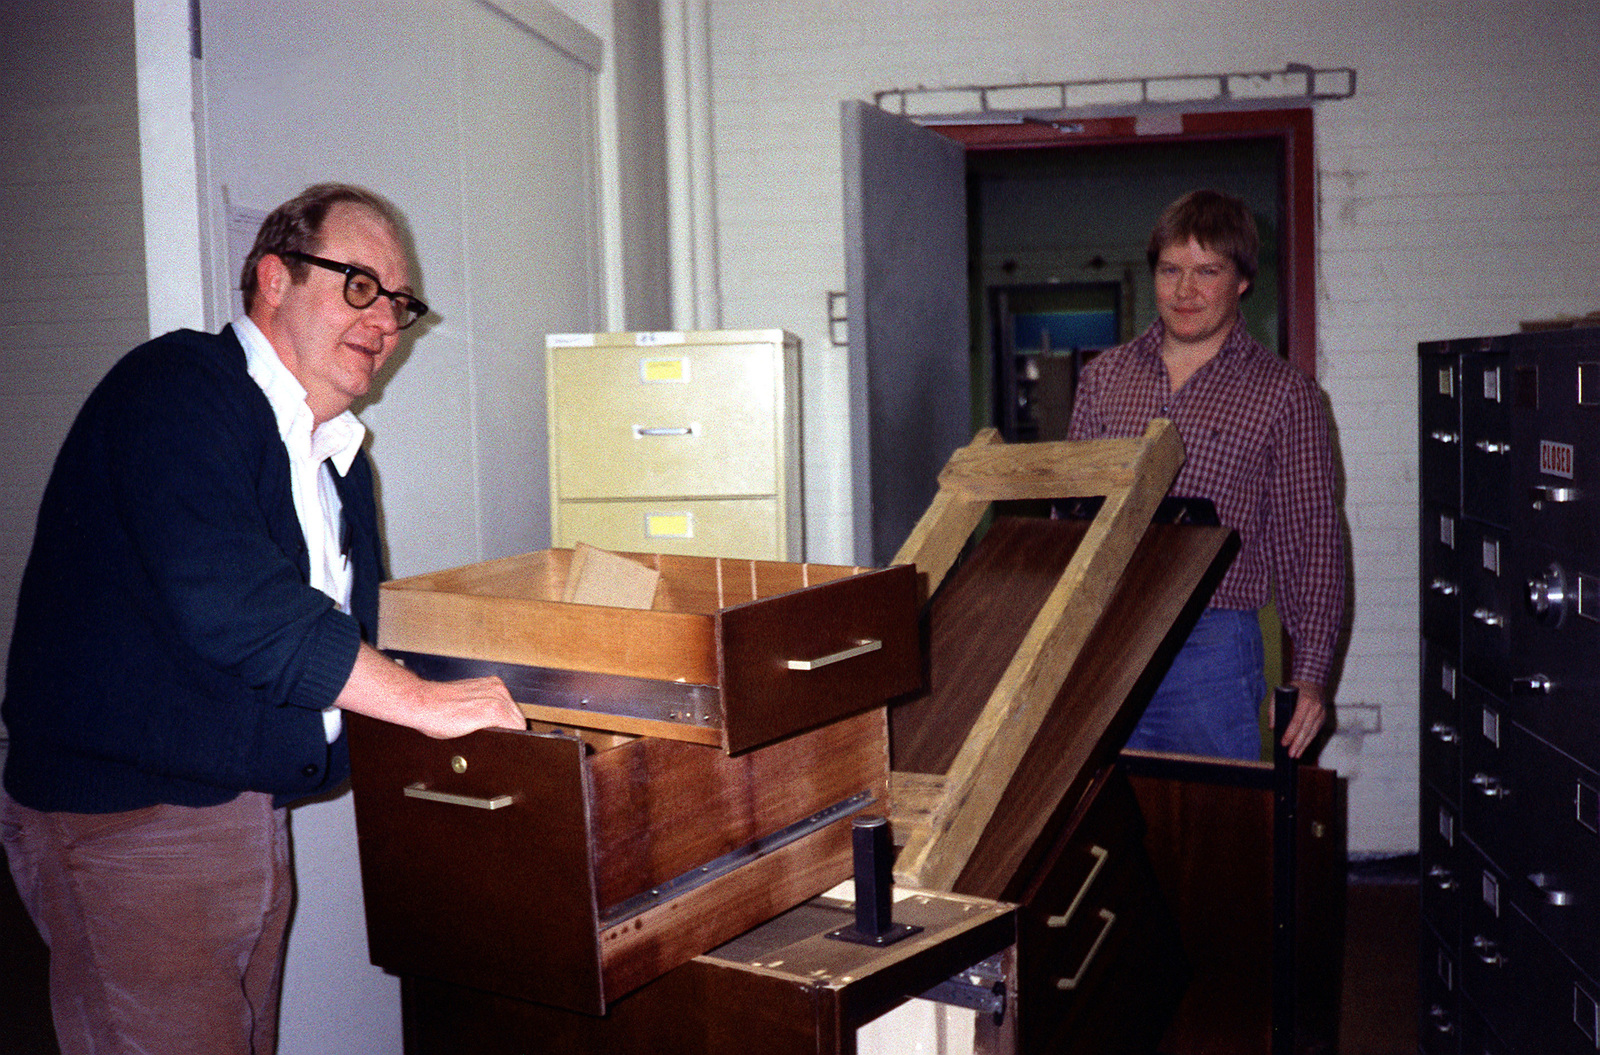 John Finn and Kevin Riordan lend a hand in moving the Army's collection as work progresses during the Defense Audiovisual Agency's consolidation of the audiovisual functions of the four services and moving them together under one roof